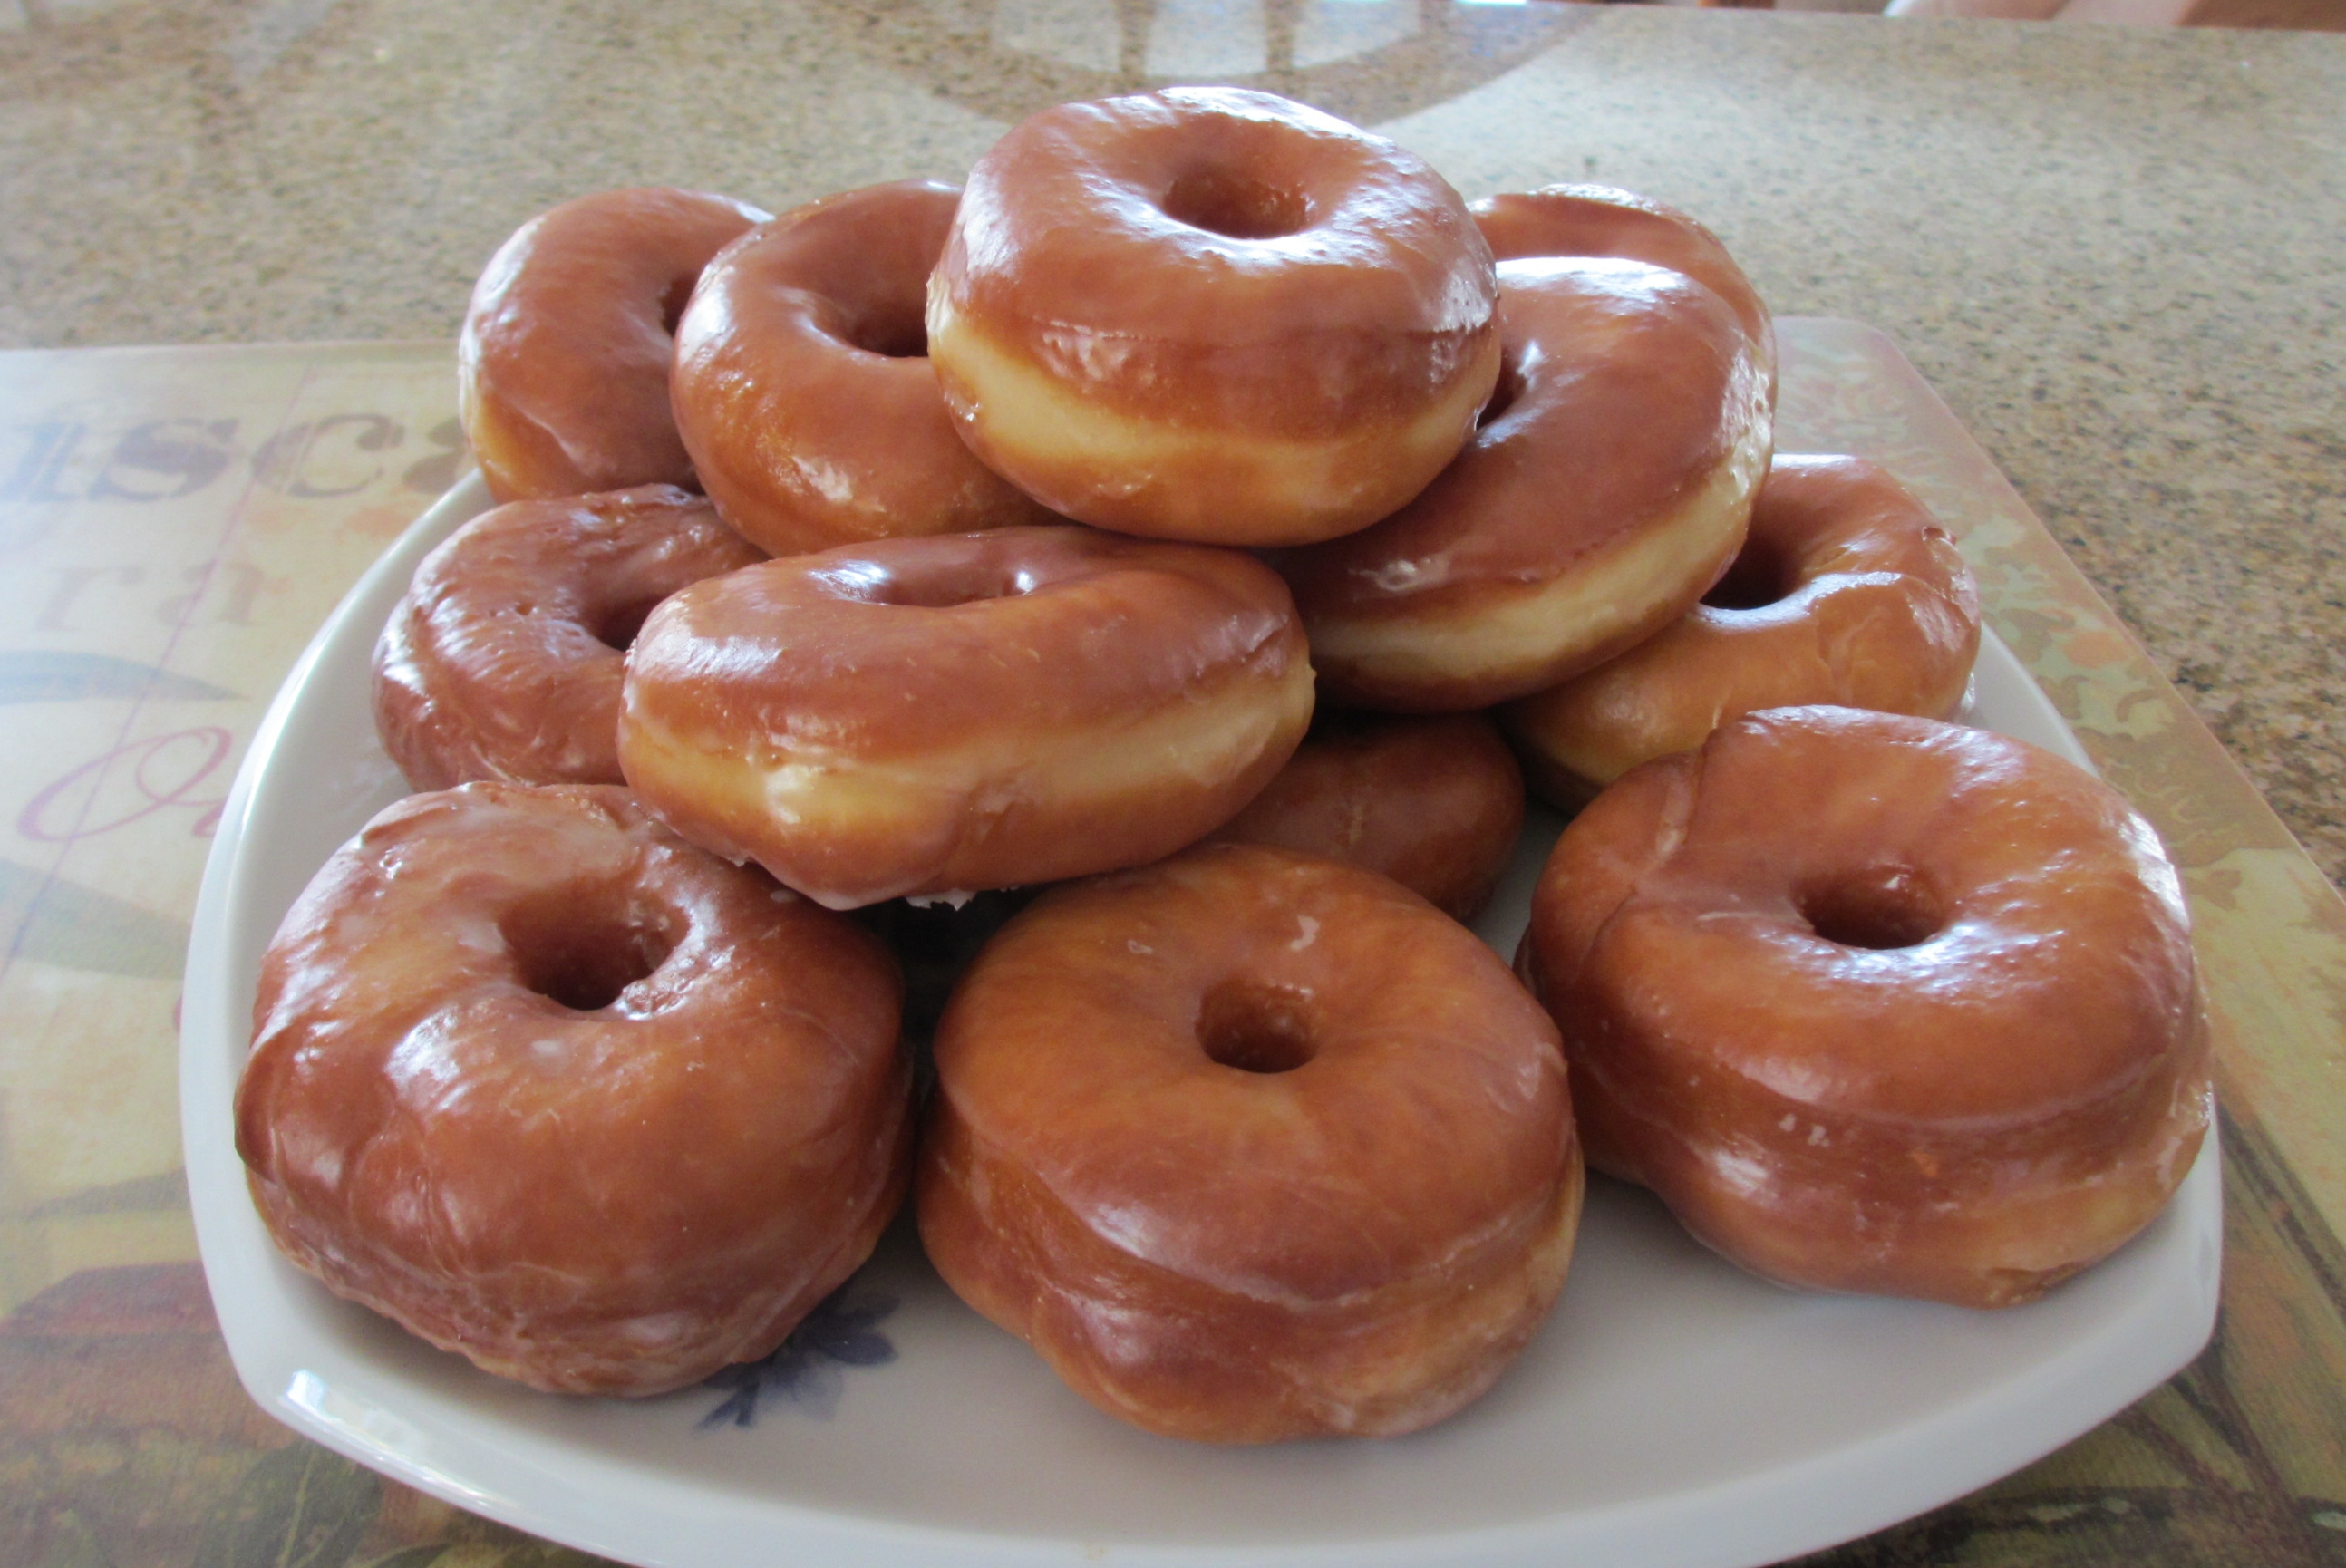 Glazed Donuts | Build n' Cook With Tom